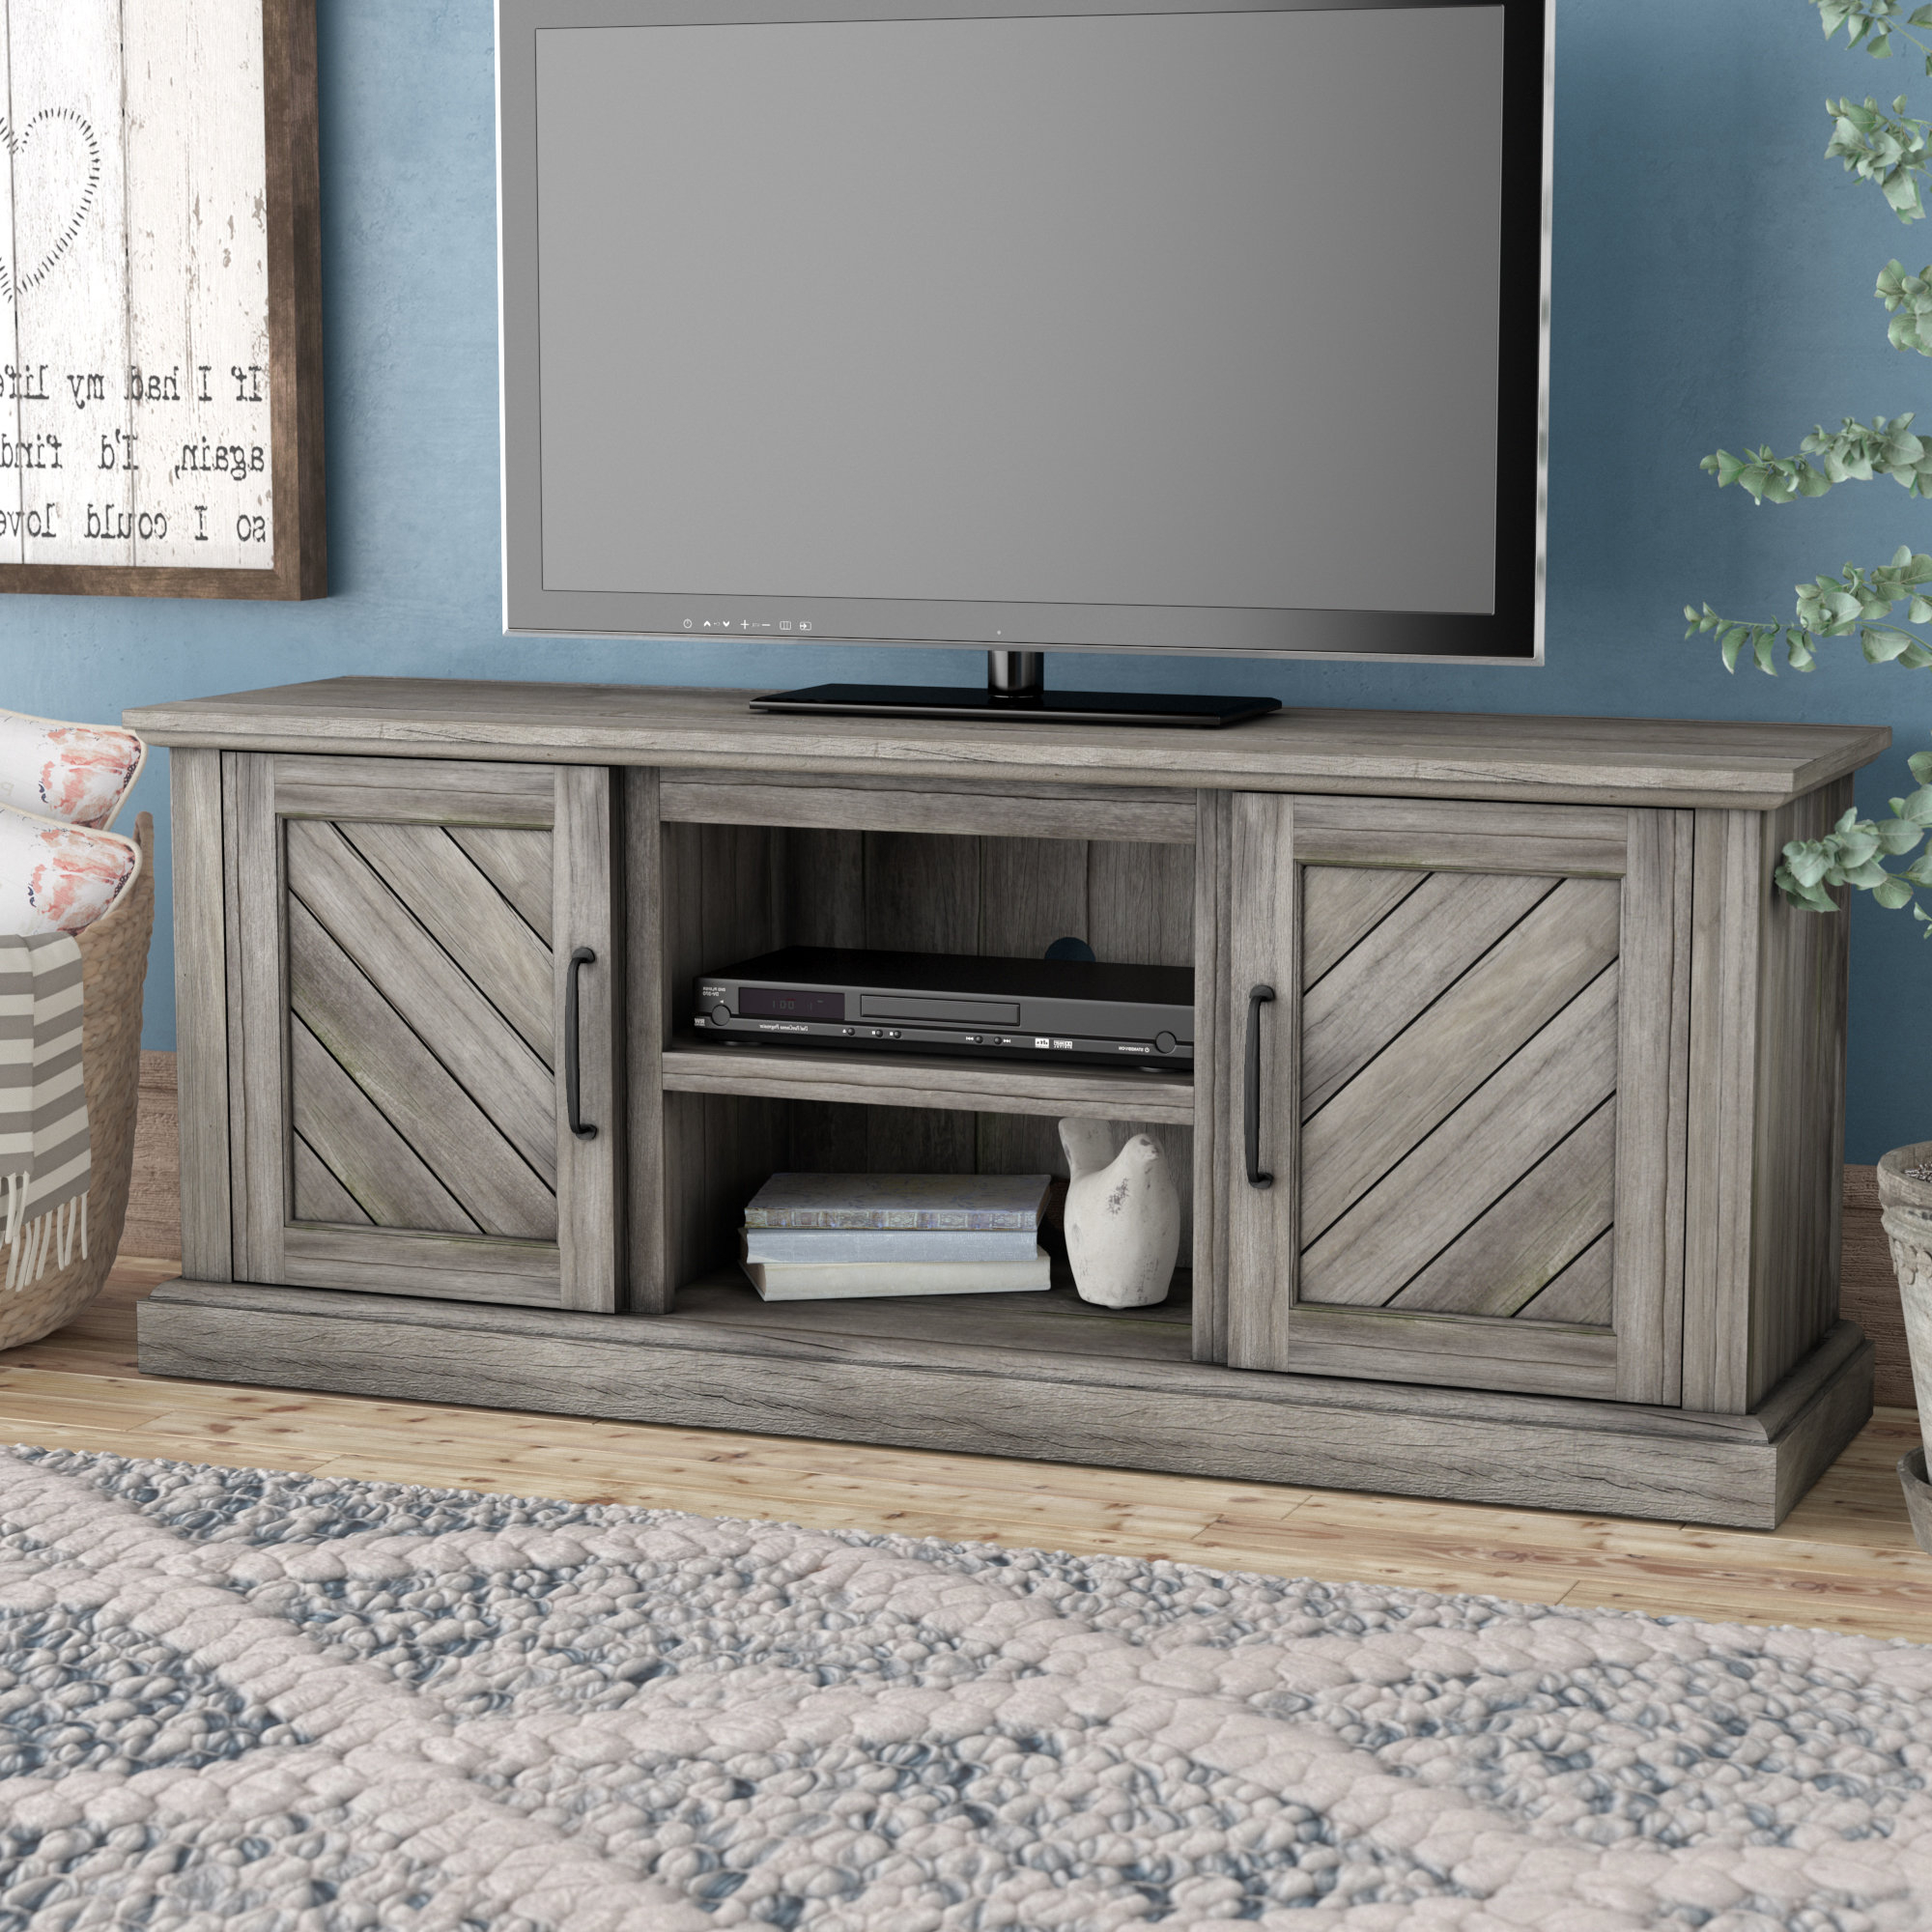 Tv Stand For 75 Inch Tv | Wayfair Within Laurent 60 Inch Tv Stands (View 19 of 20)